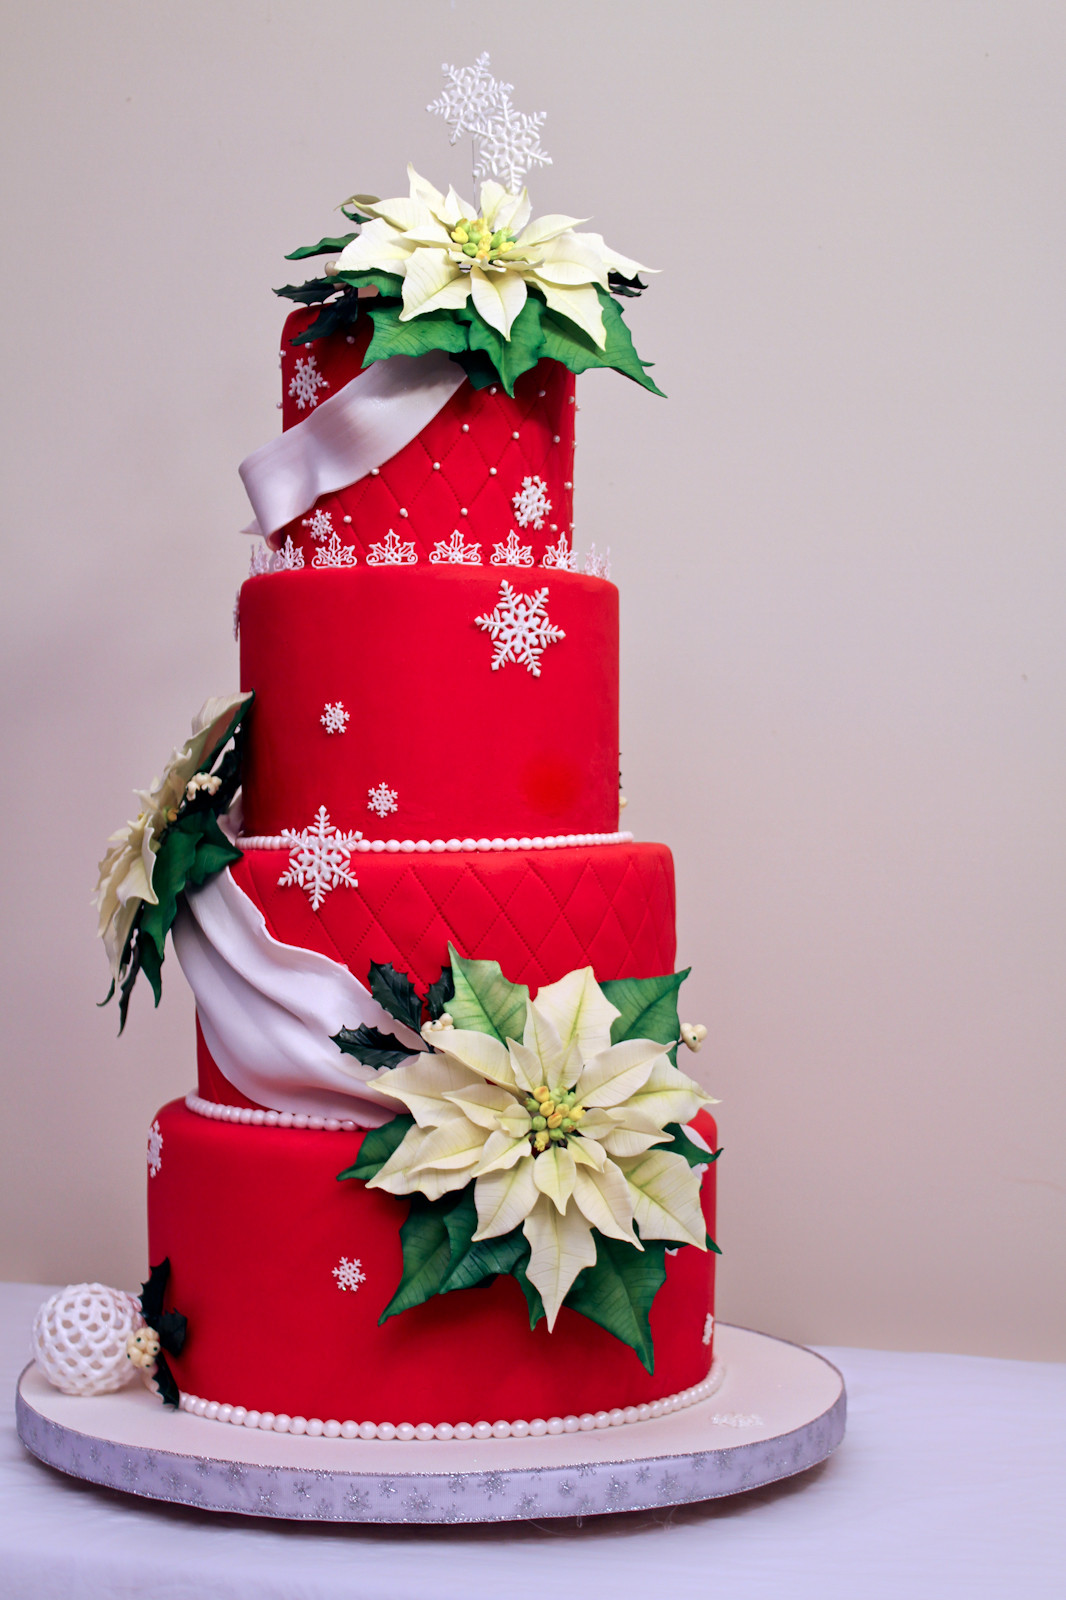 Cakes For Christmas  The Cake Engineer Holiday Poinsettia Cake